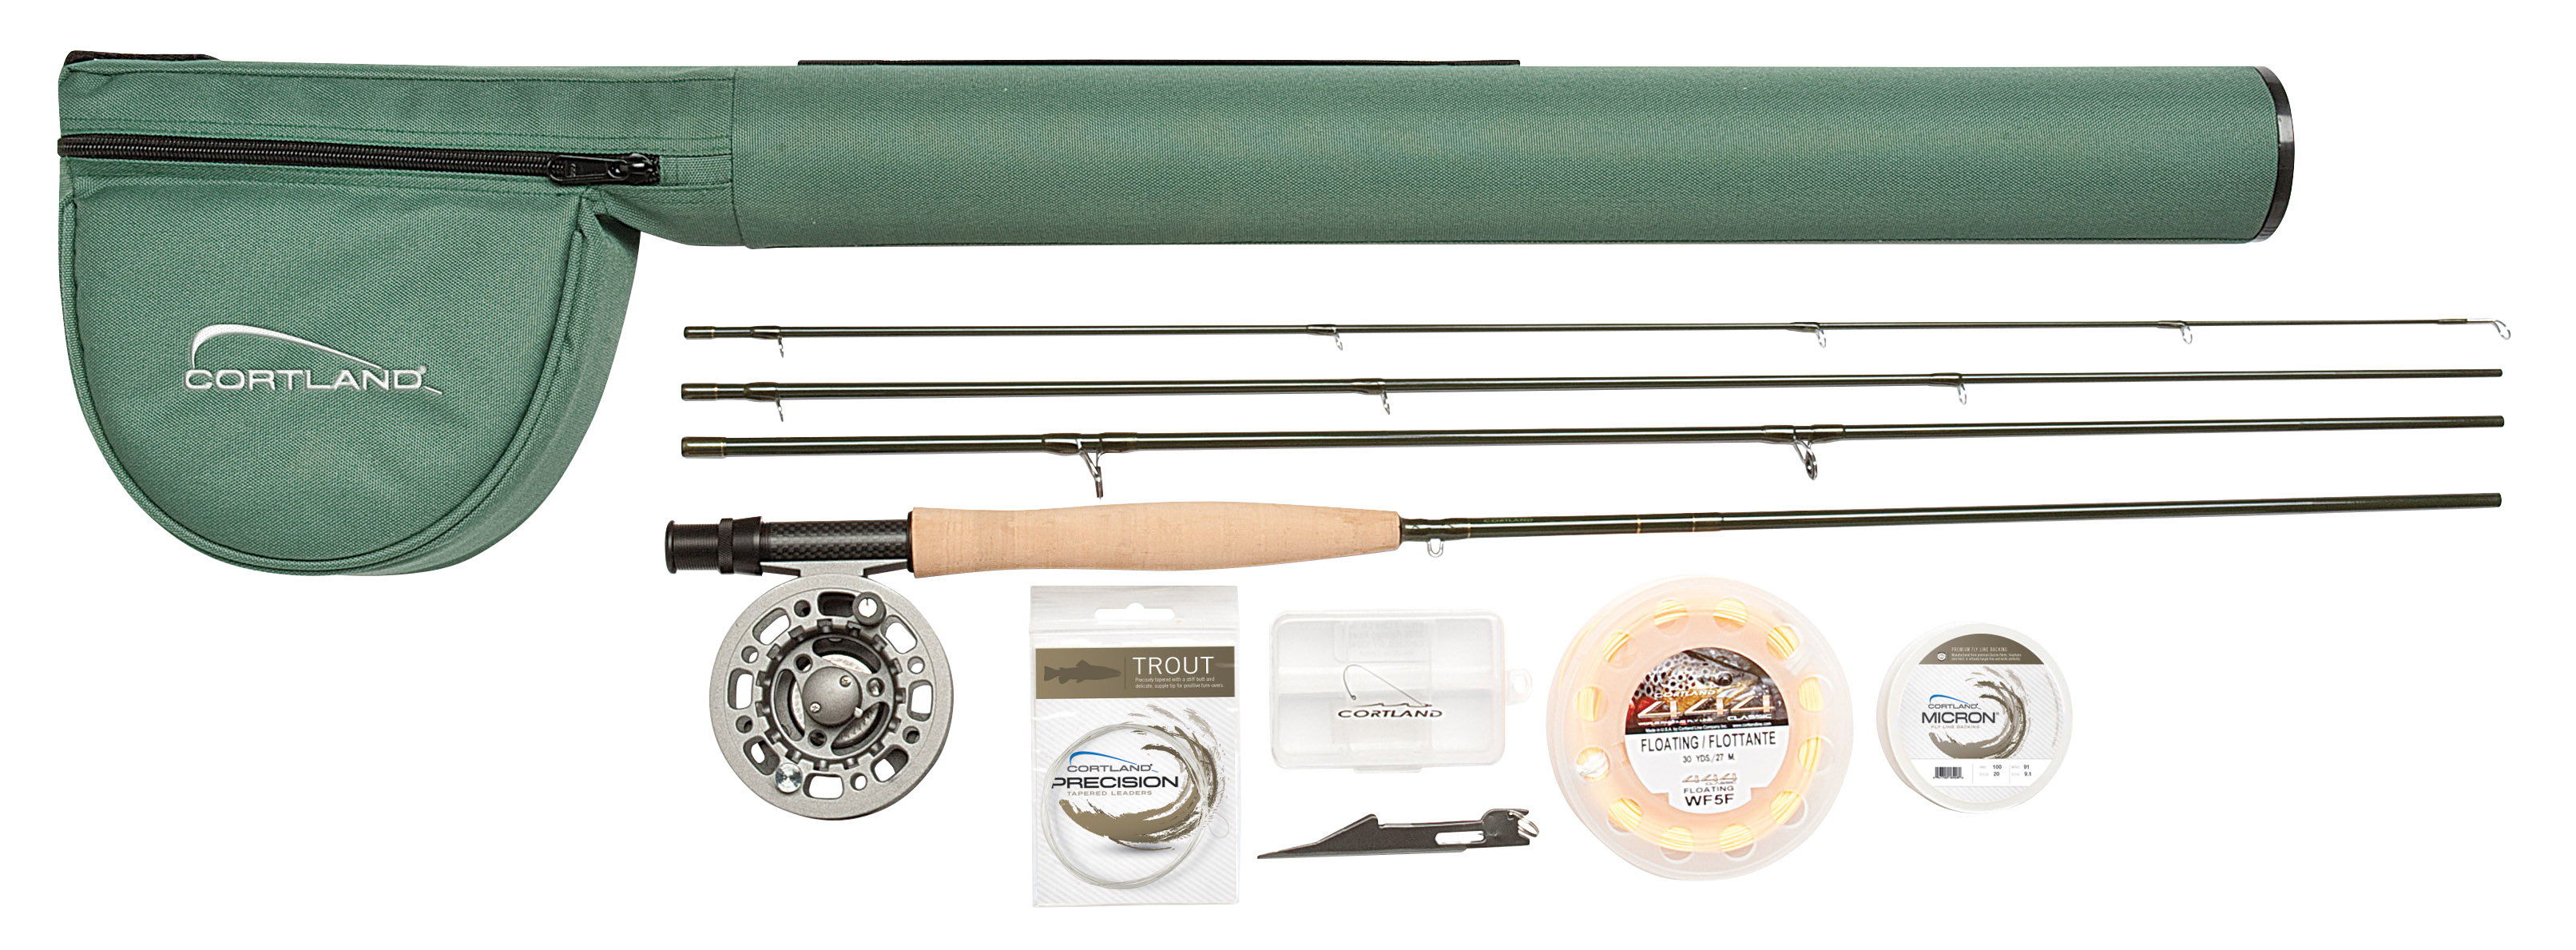 Cortland 444 Fly Fishing Kit Glasgow Angling Centre